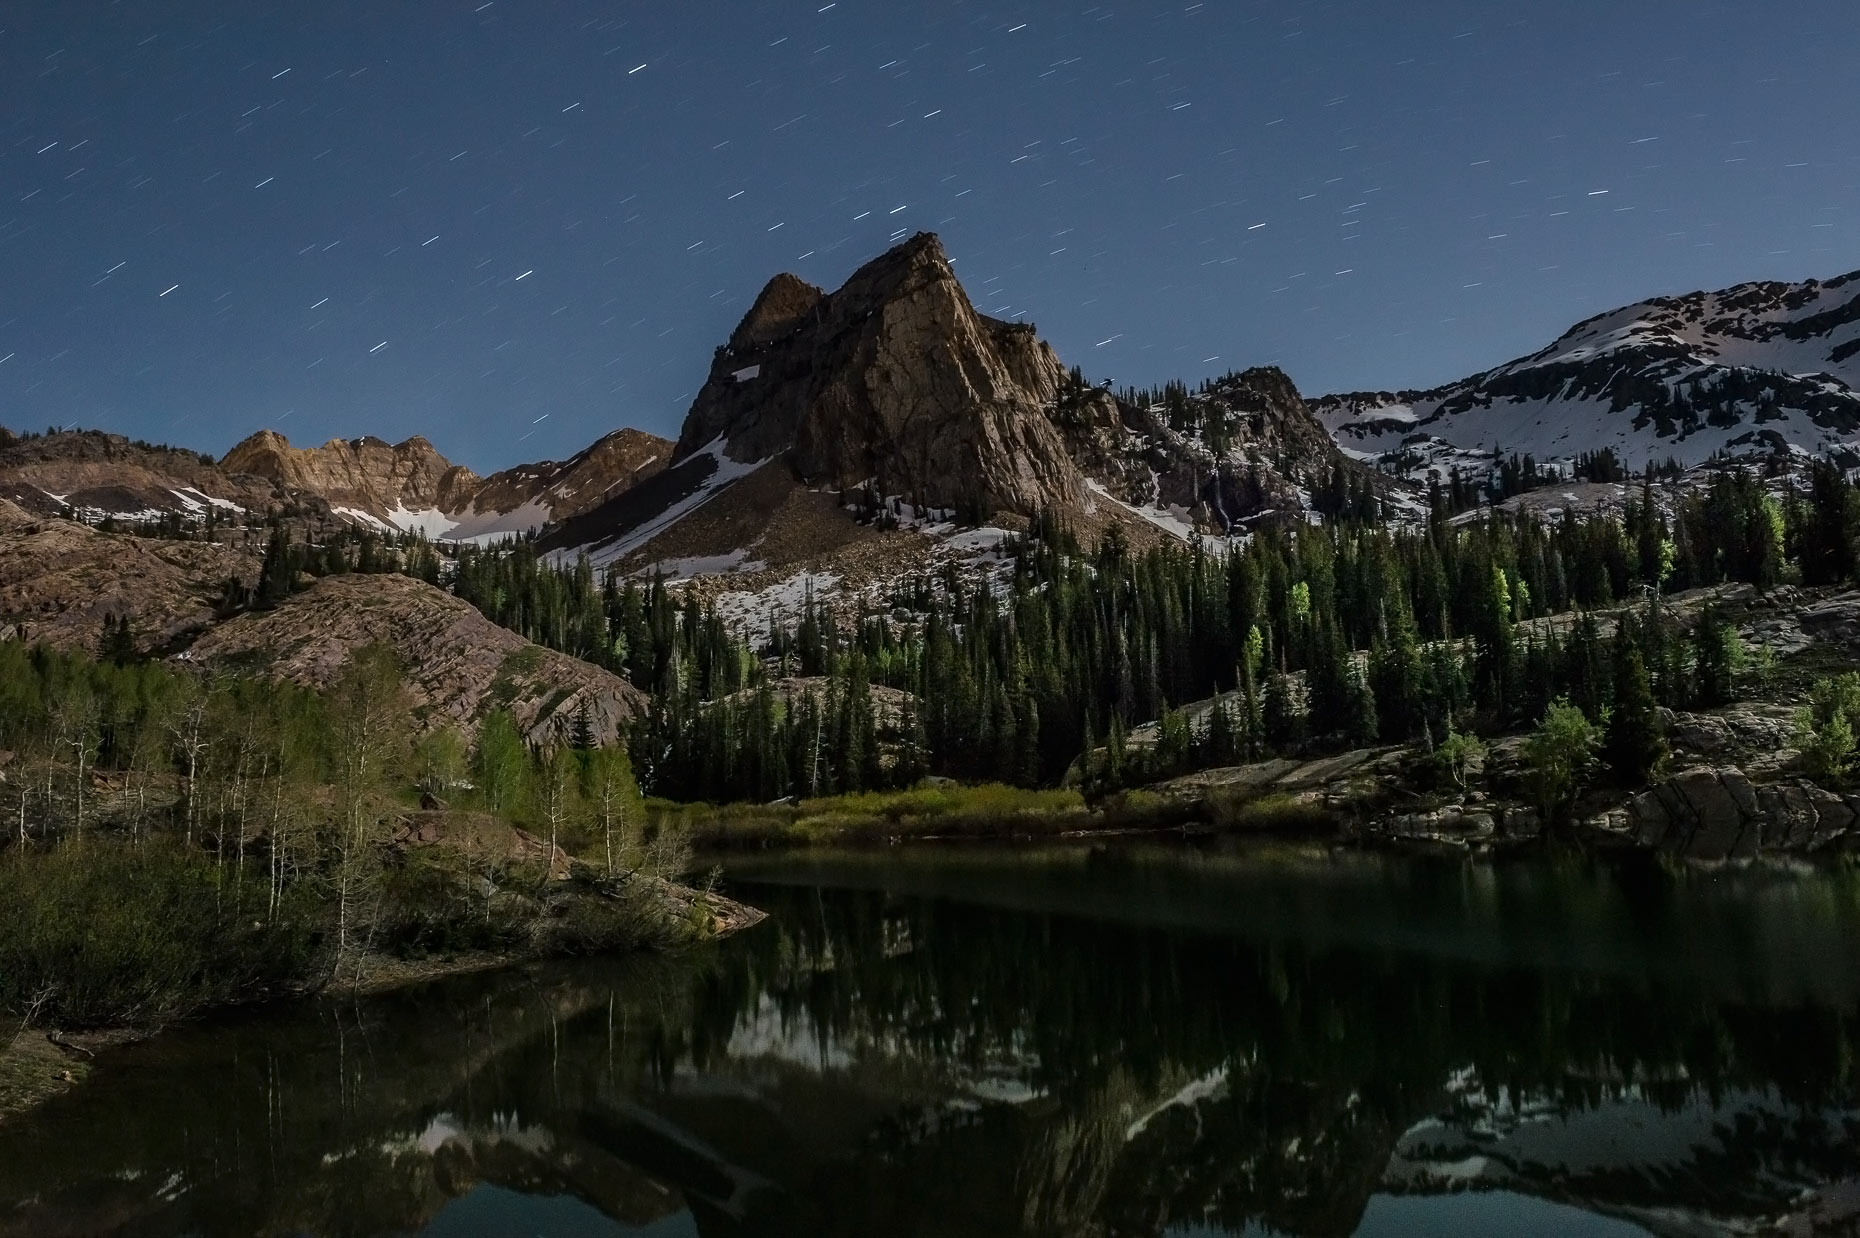 Landscape Photography - Lake Blanche at night in Utah